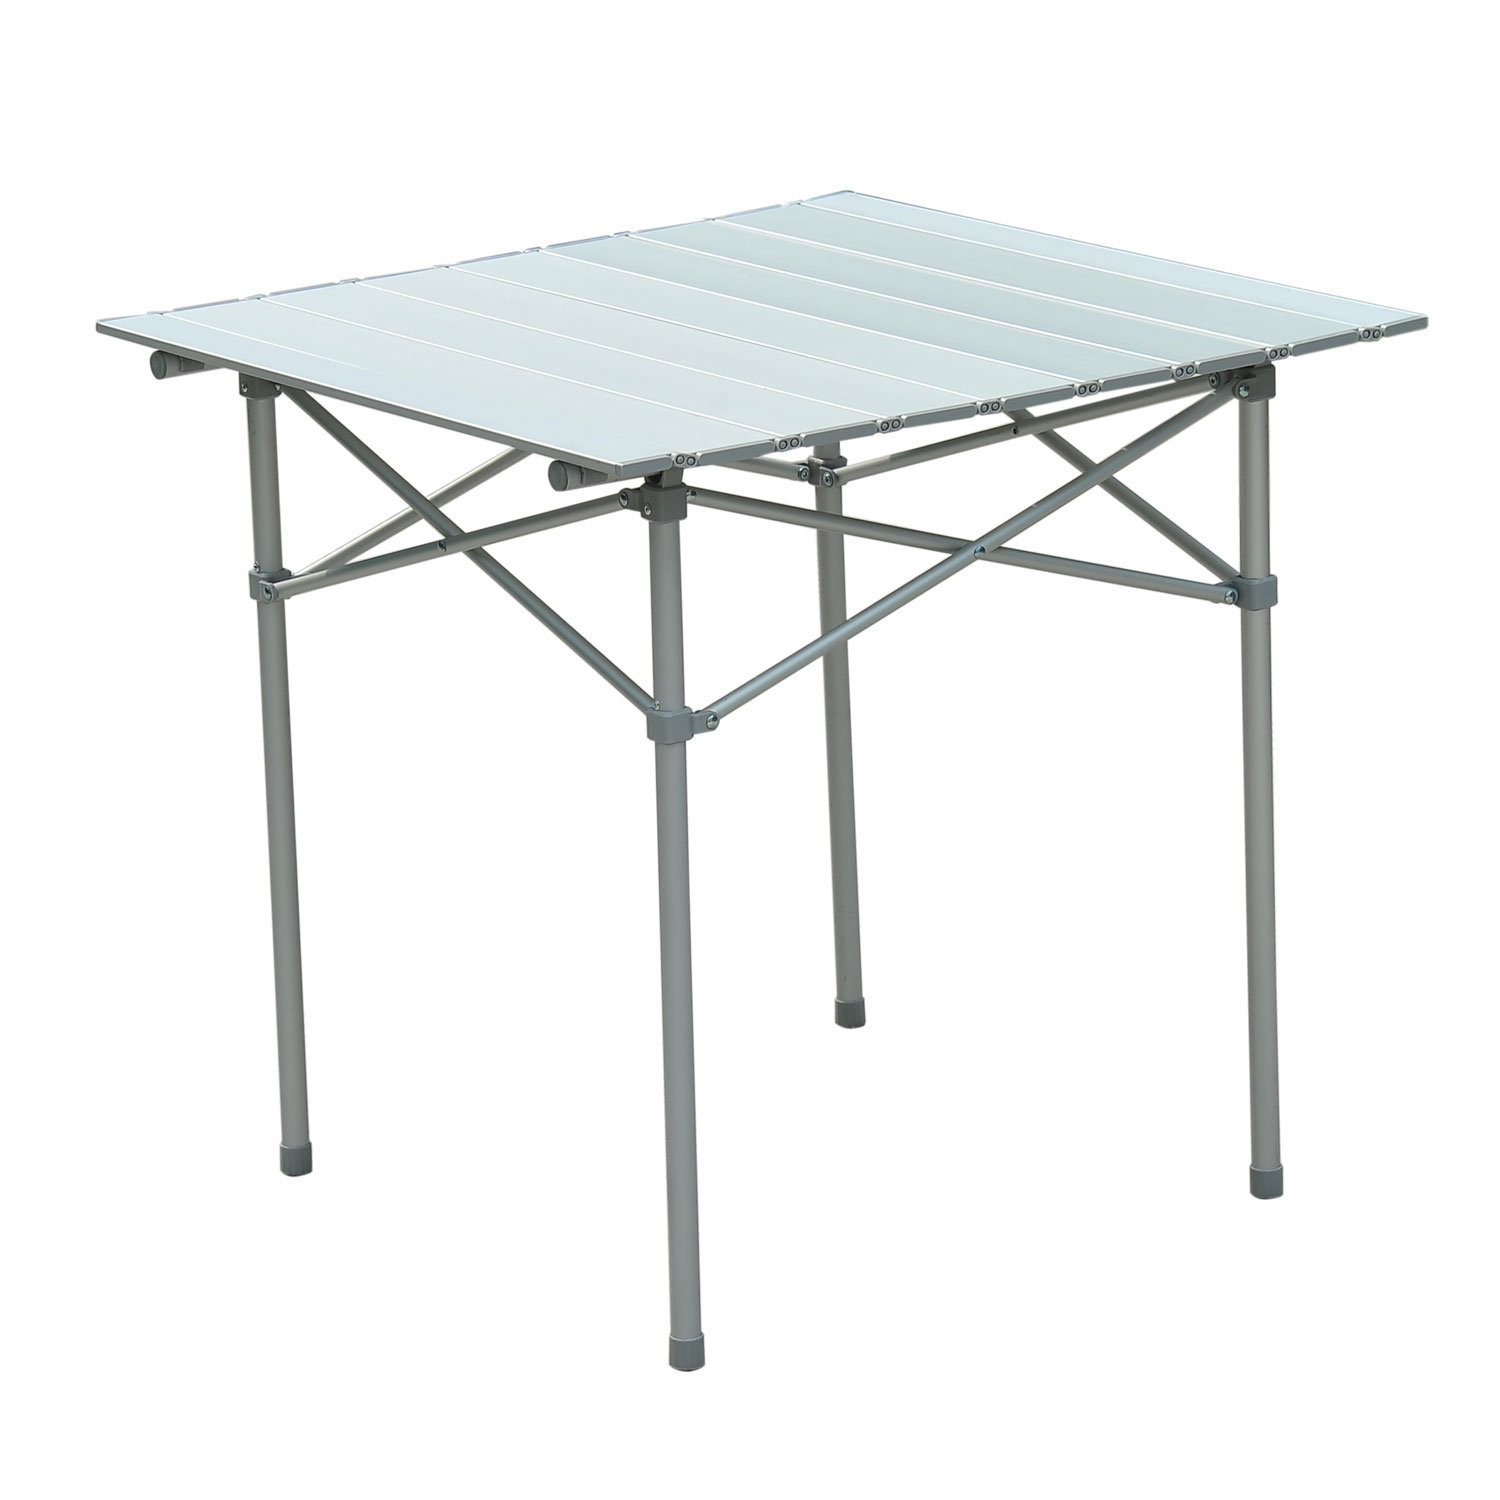 Outsunny Roll Up Top Aluminum Portable Camping Table W/ Carrying Bag    Silver